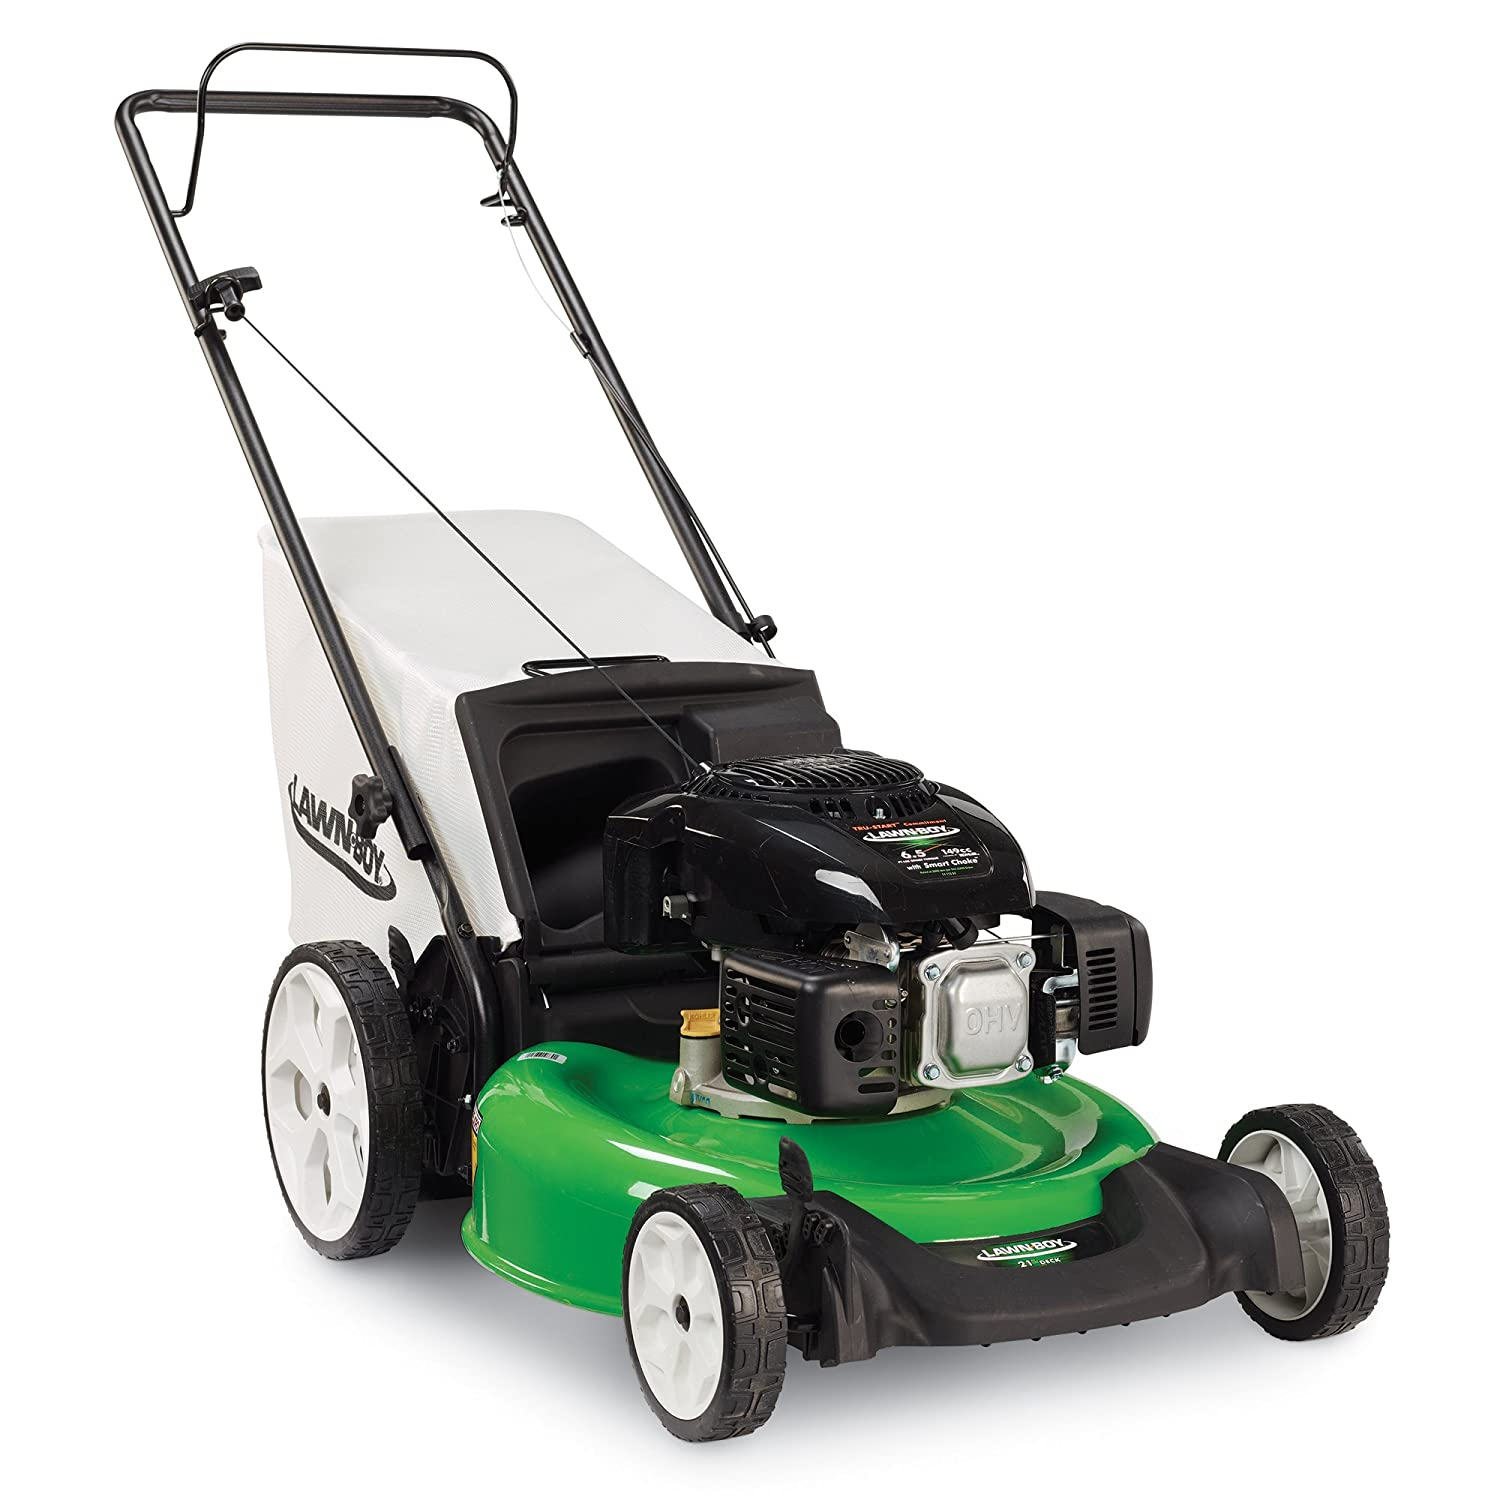 Lawn Boy 10730 Kohler XT6 OHV High Wheel Push Gas Lawn Mower